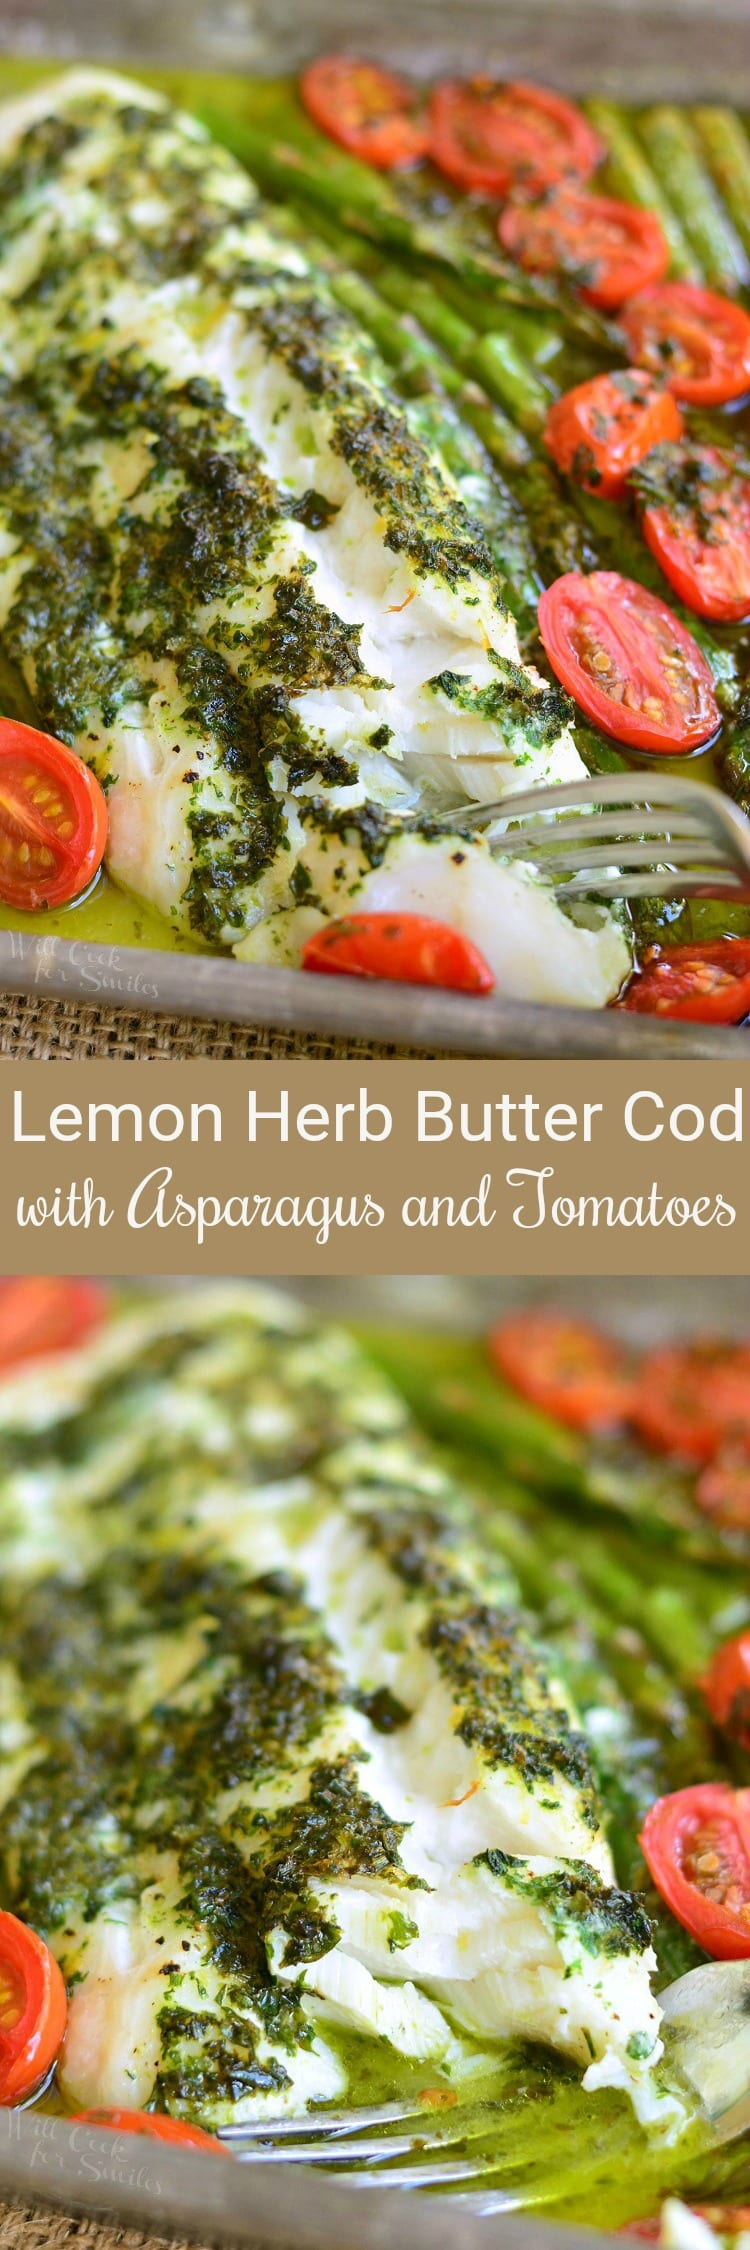 Lemon Herb Butter Cod with Asparagus and Tomatoes in a baking dish collage